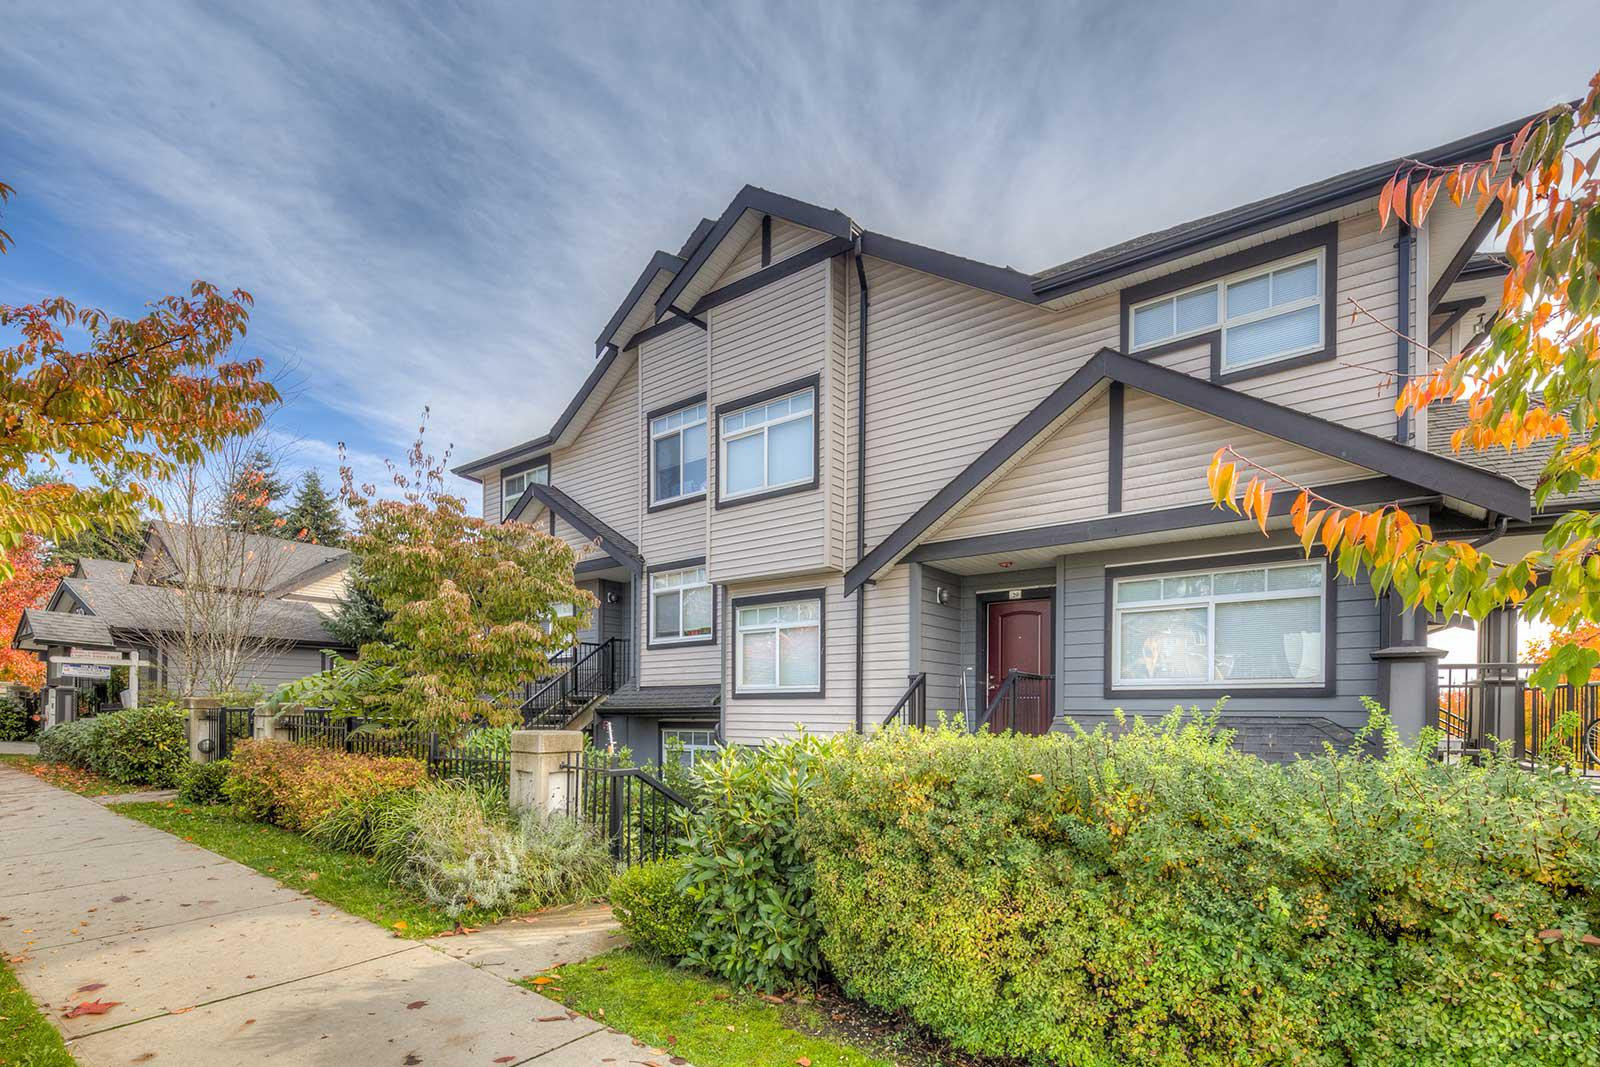 Kingsgate Gardens at 7428 14th Ave, Burnaby 0